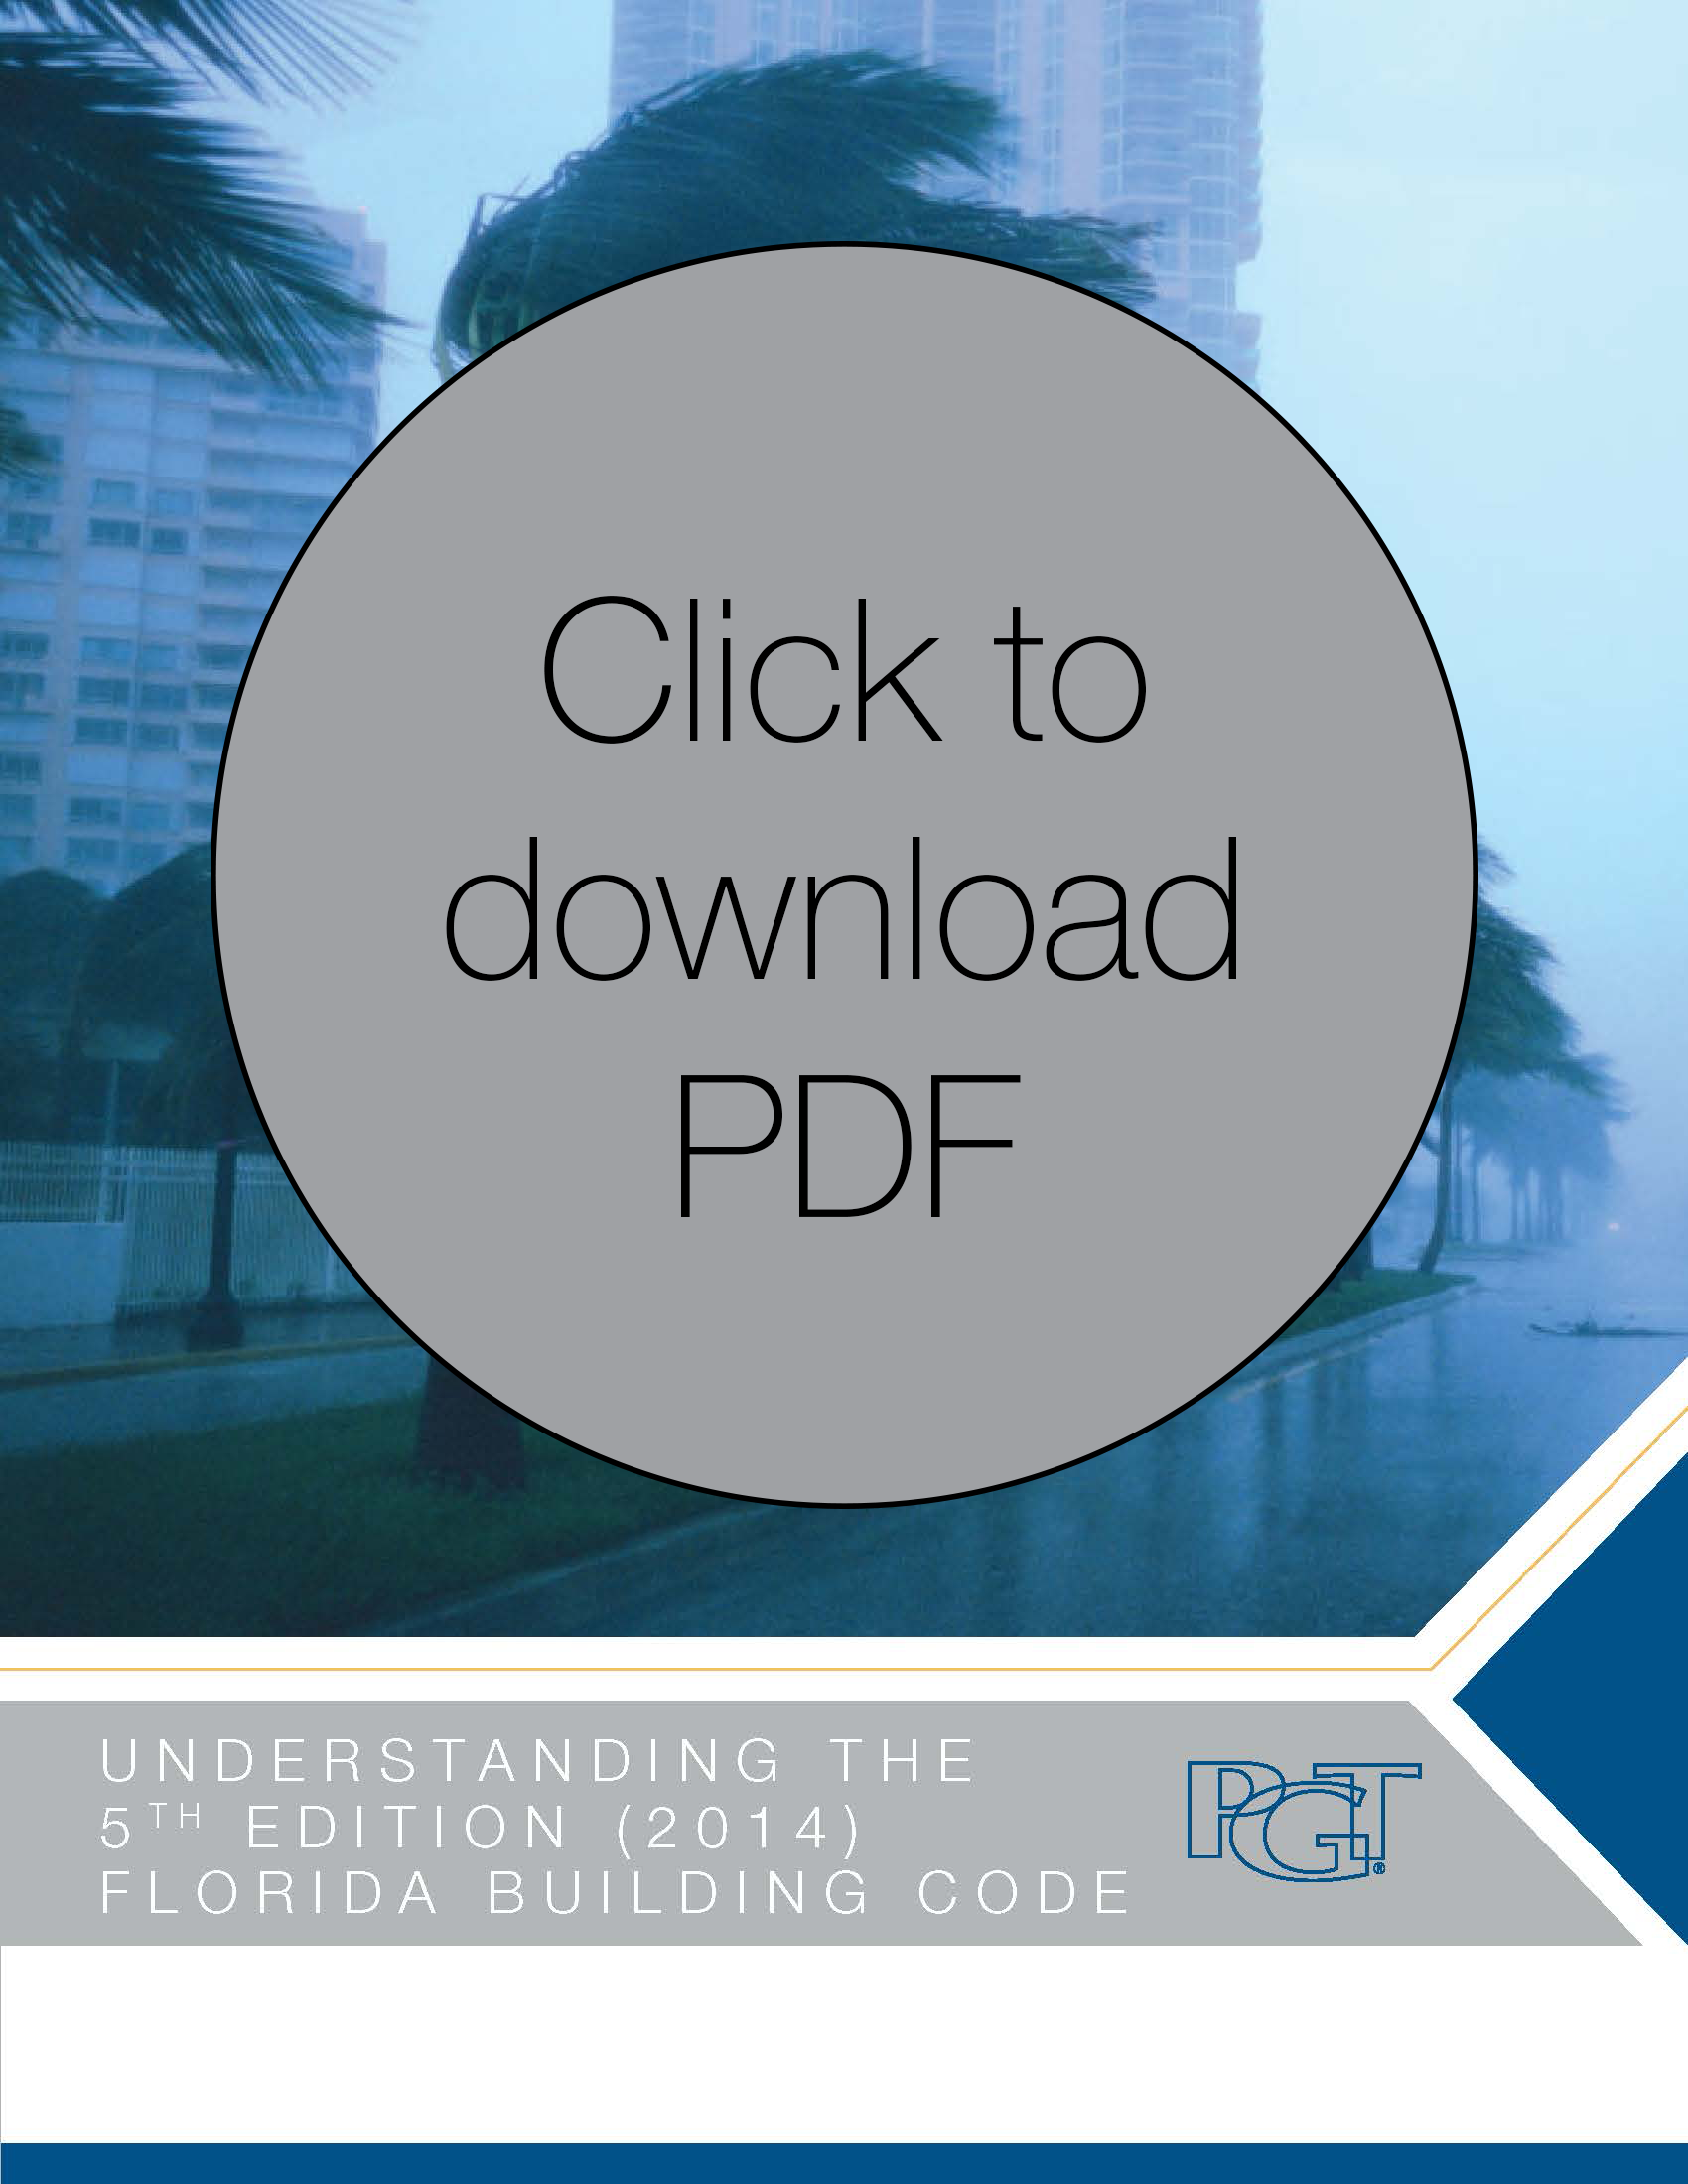 Understanding the 5th Edition (2014) Florida Building Code